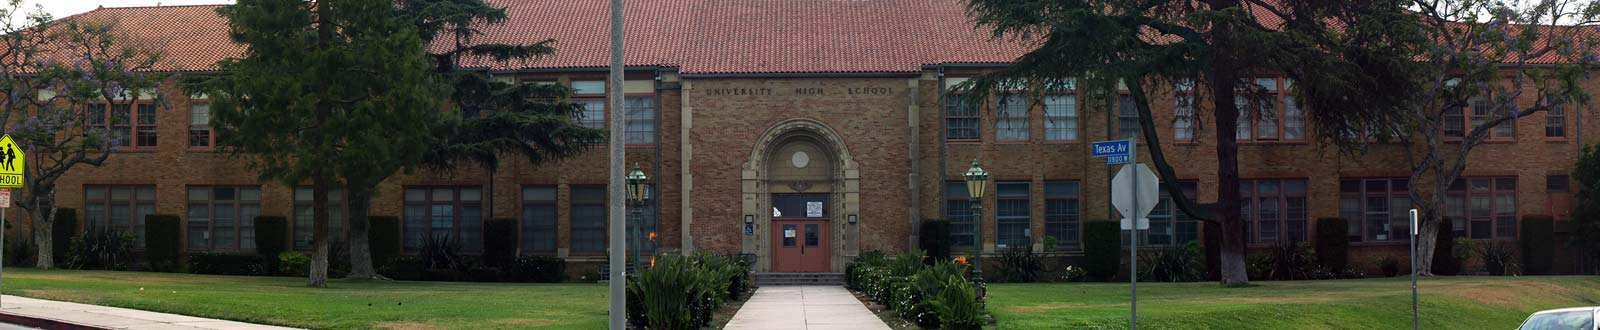 The University High School in Los Angeles